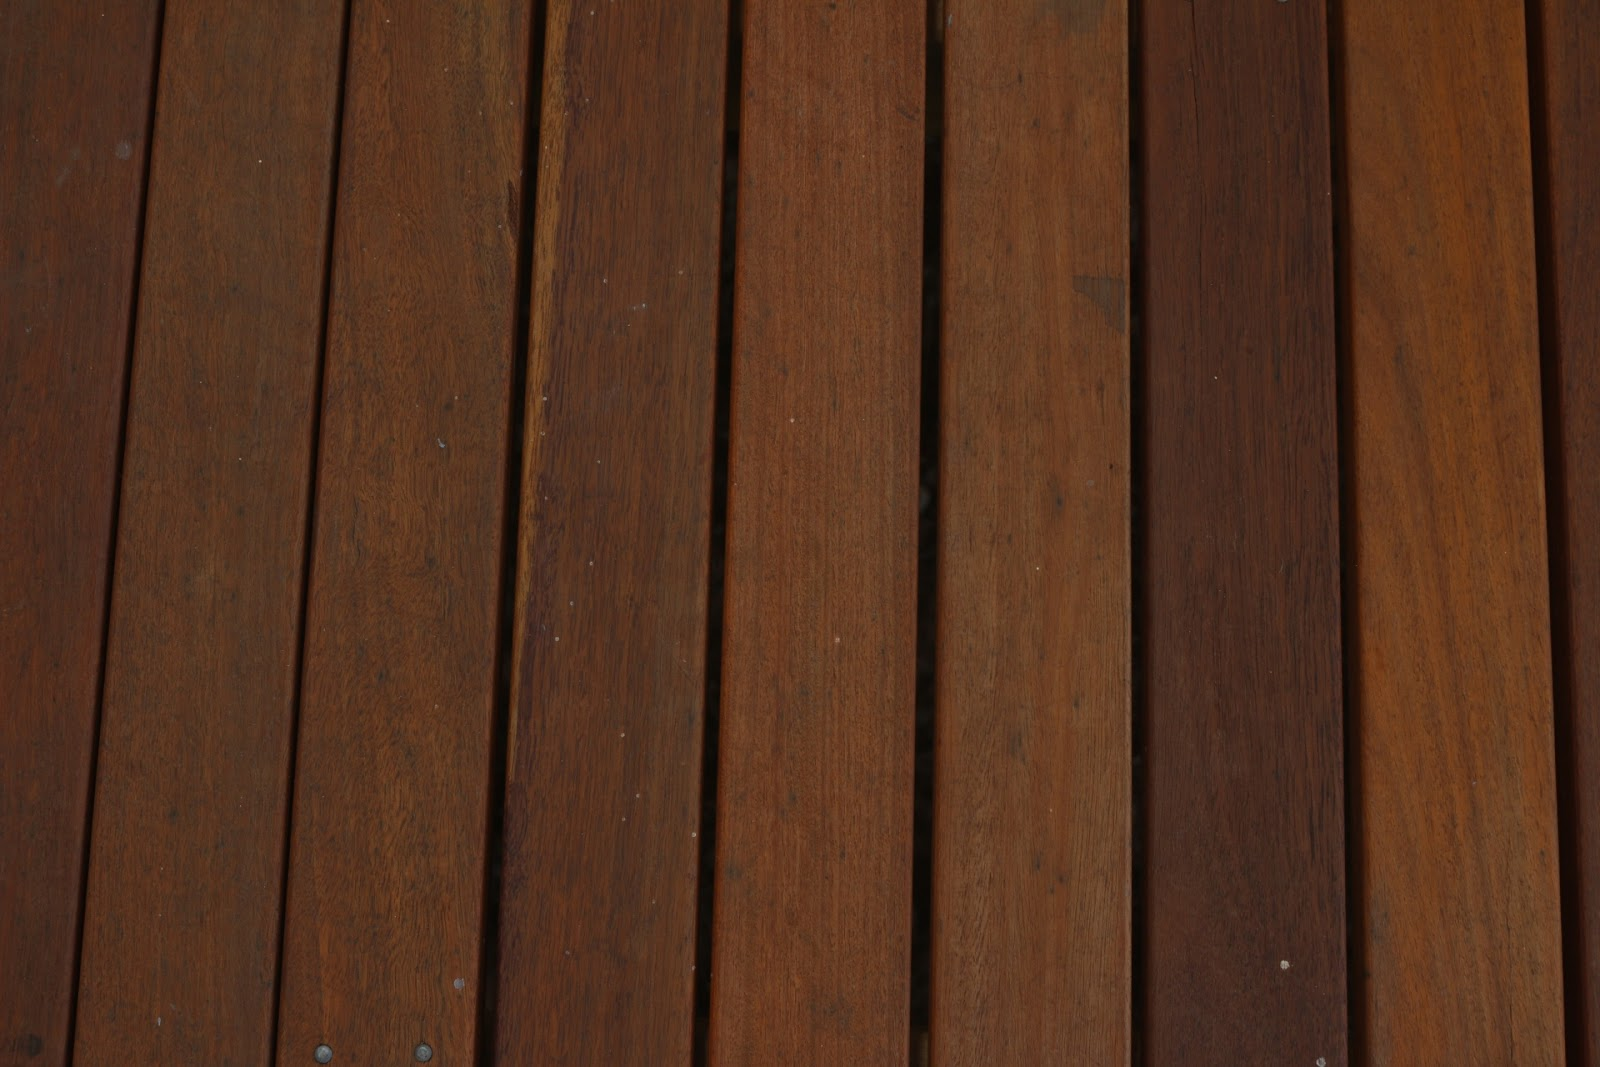 decking-vertical.jpg